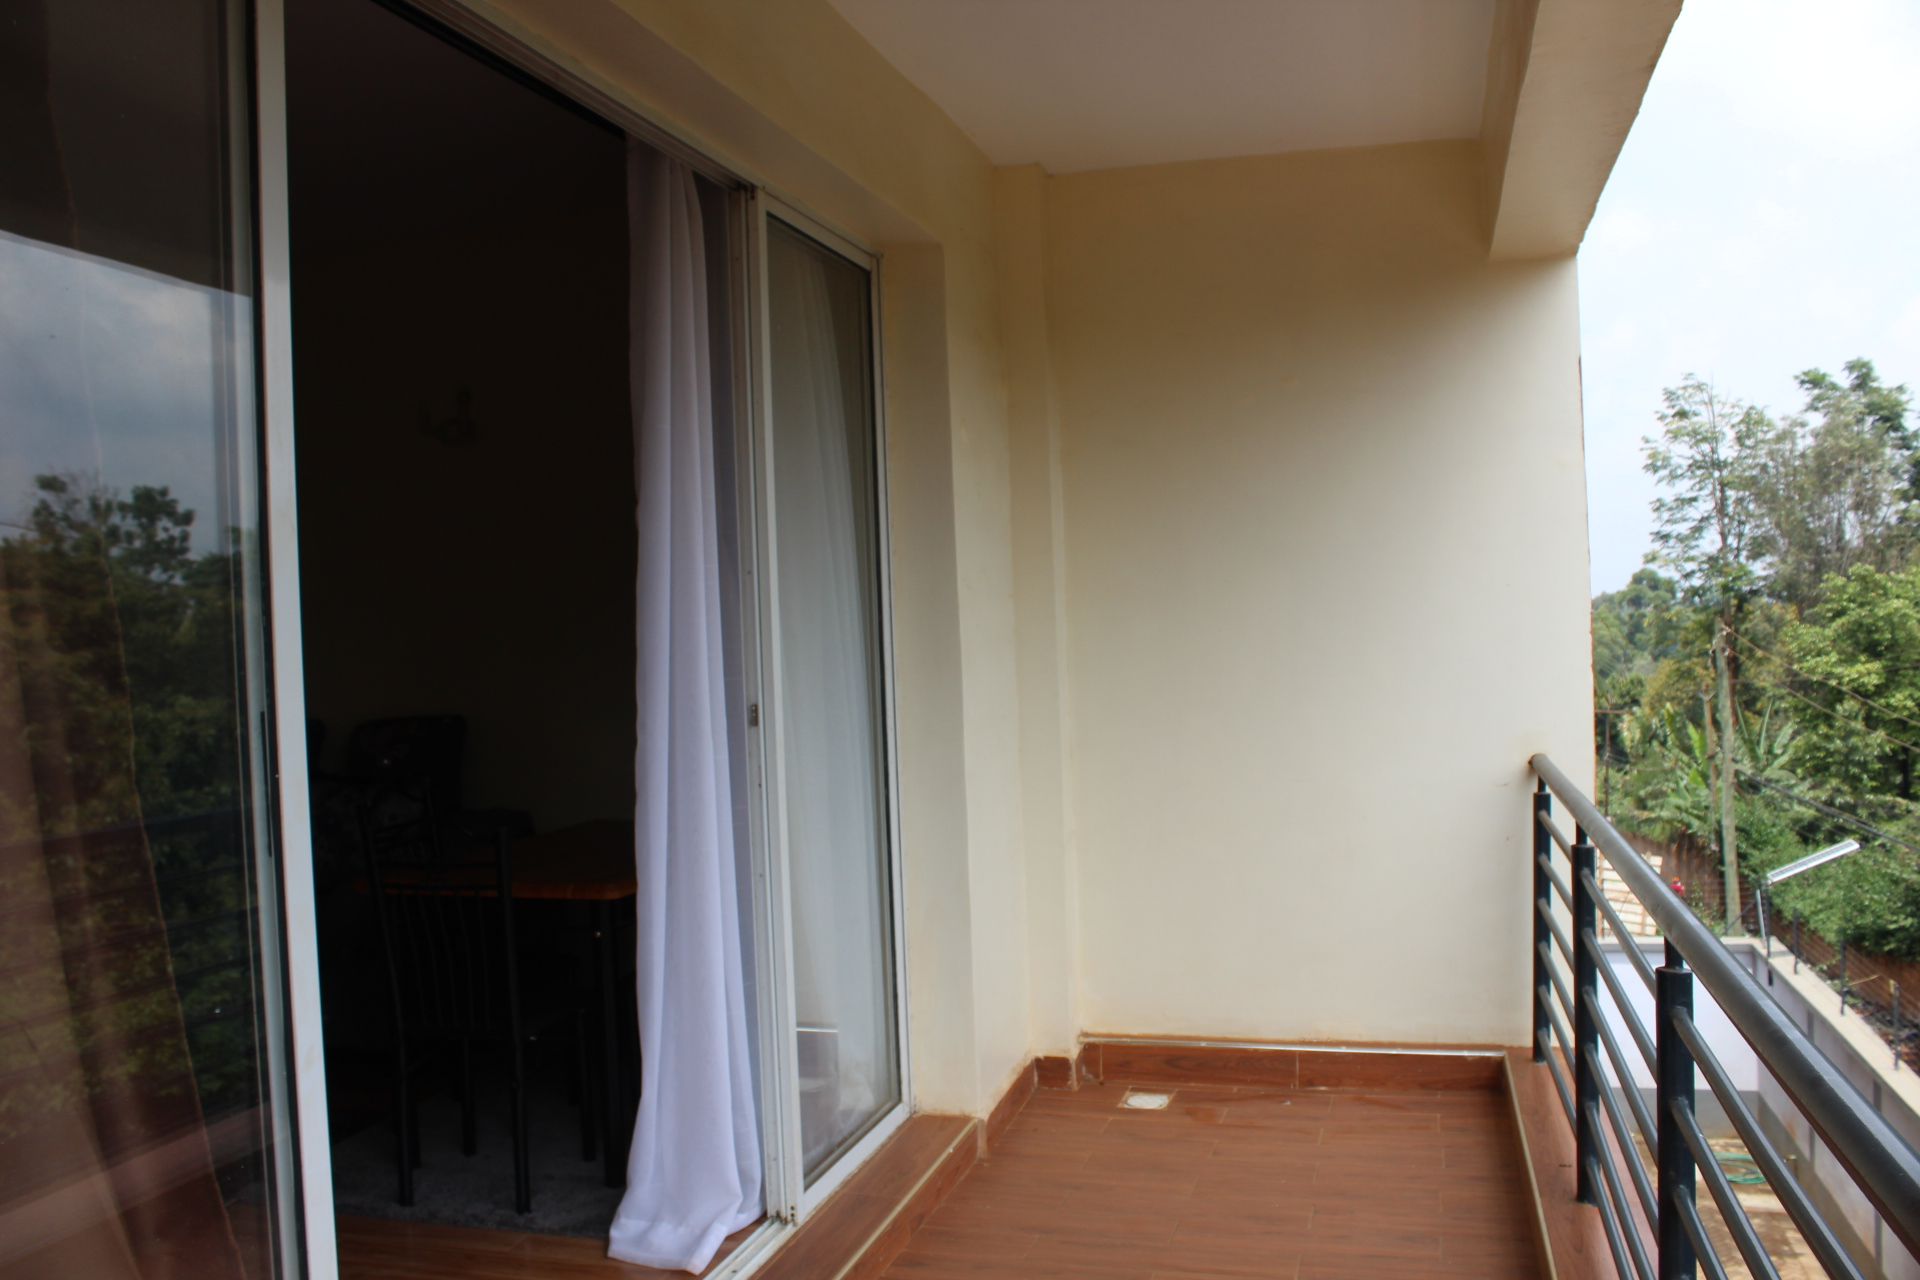 Amani Ochirds (2 Bedroom) Apartment.